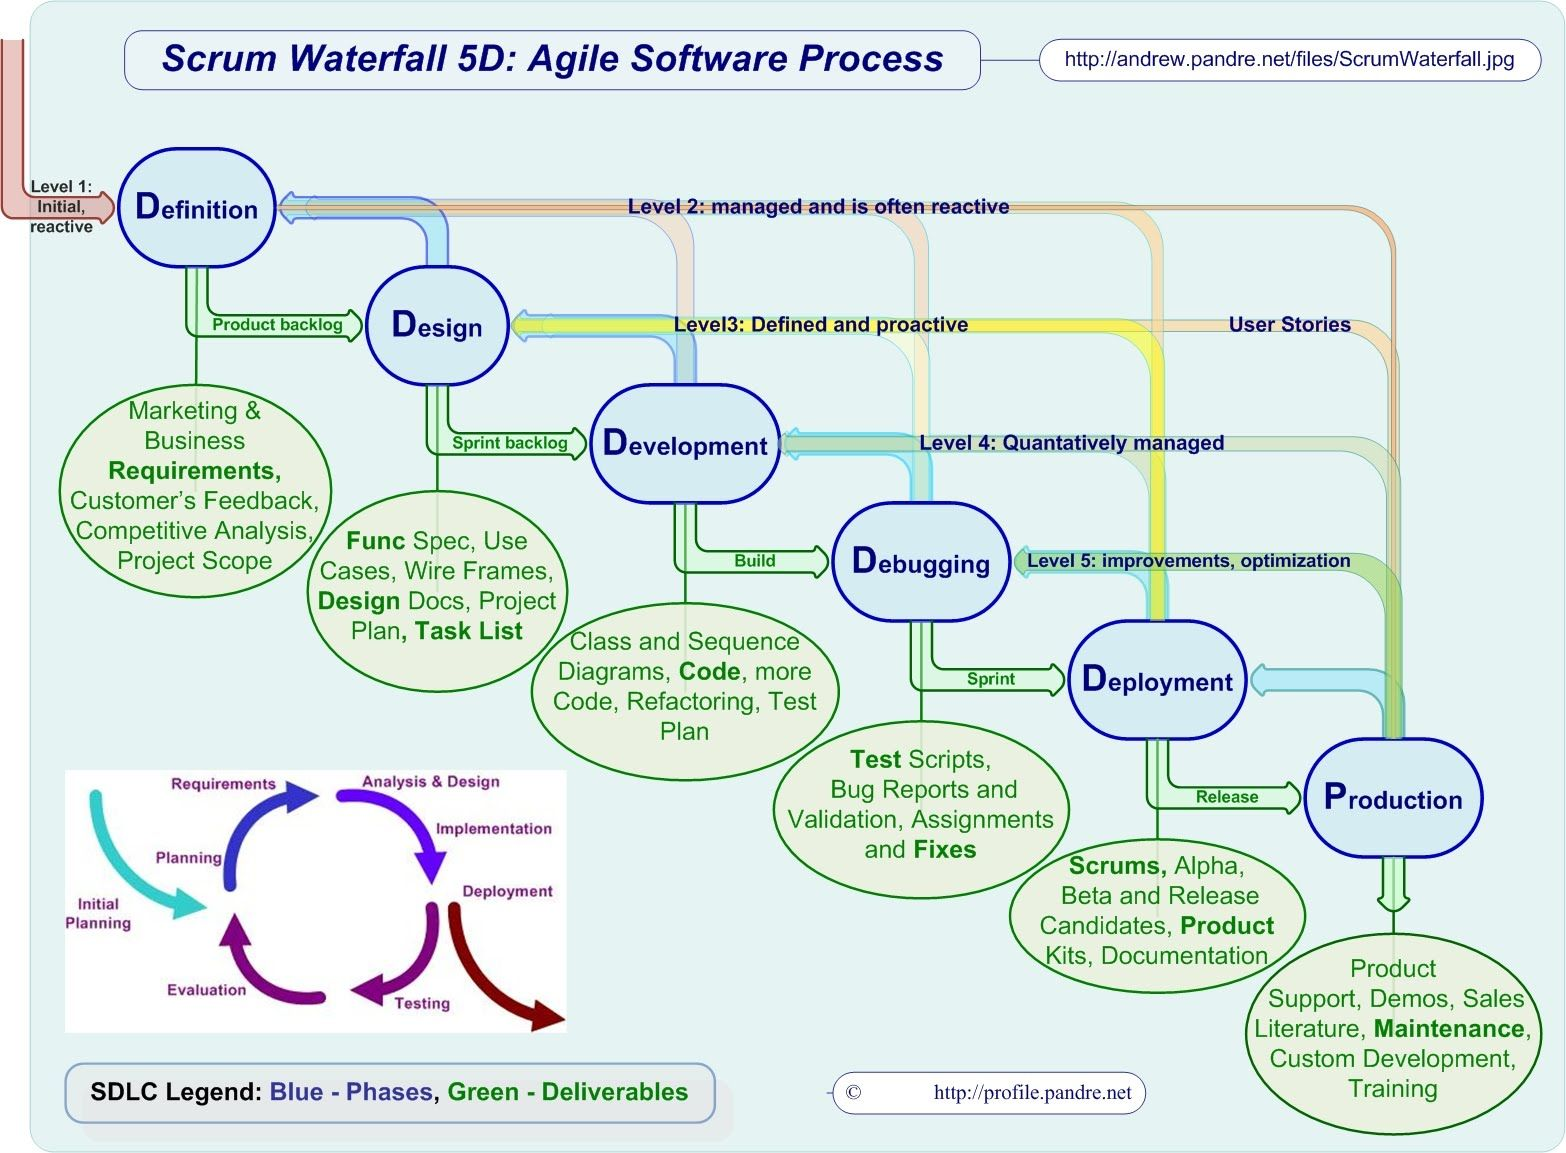 agile process flow diagram 1971 chevelle wiper wiring scrum waterfall 5d software